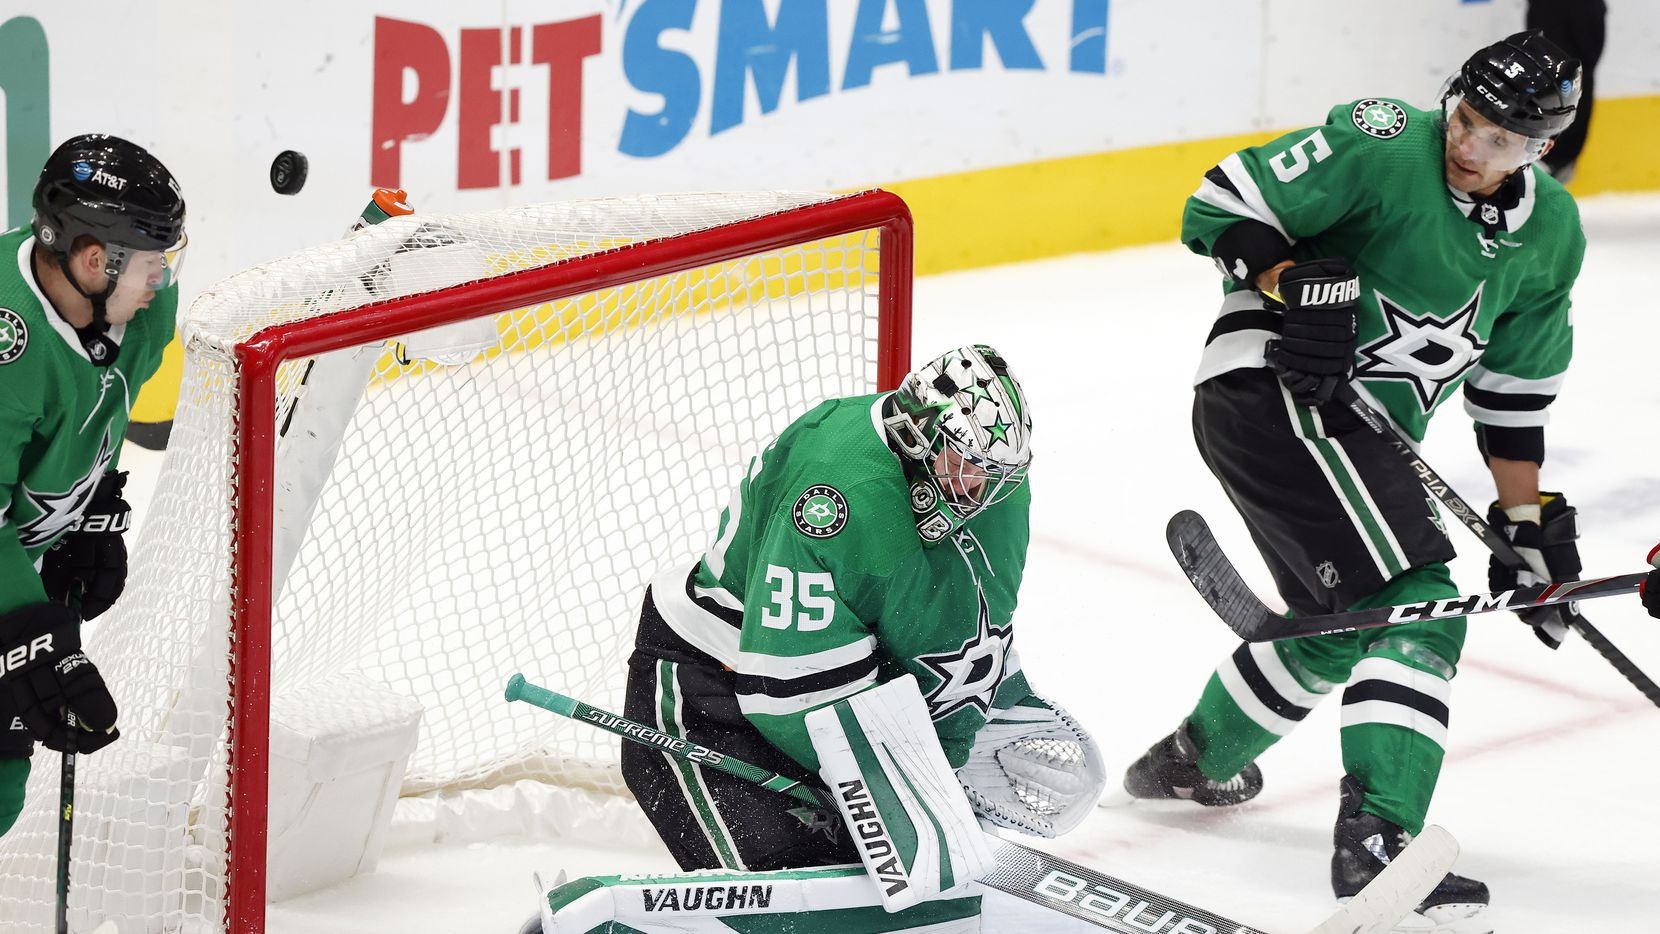 Dallas Stars goaltender Anton Khudobin (35) deflects a third period shot by the Chicago Blackhawks in the third period at the American Airlines Center in Dallas, Tuesday, March 9, 2021. The Stars defeated the Blackhawks, 6-1.